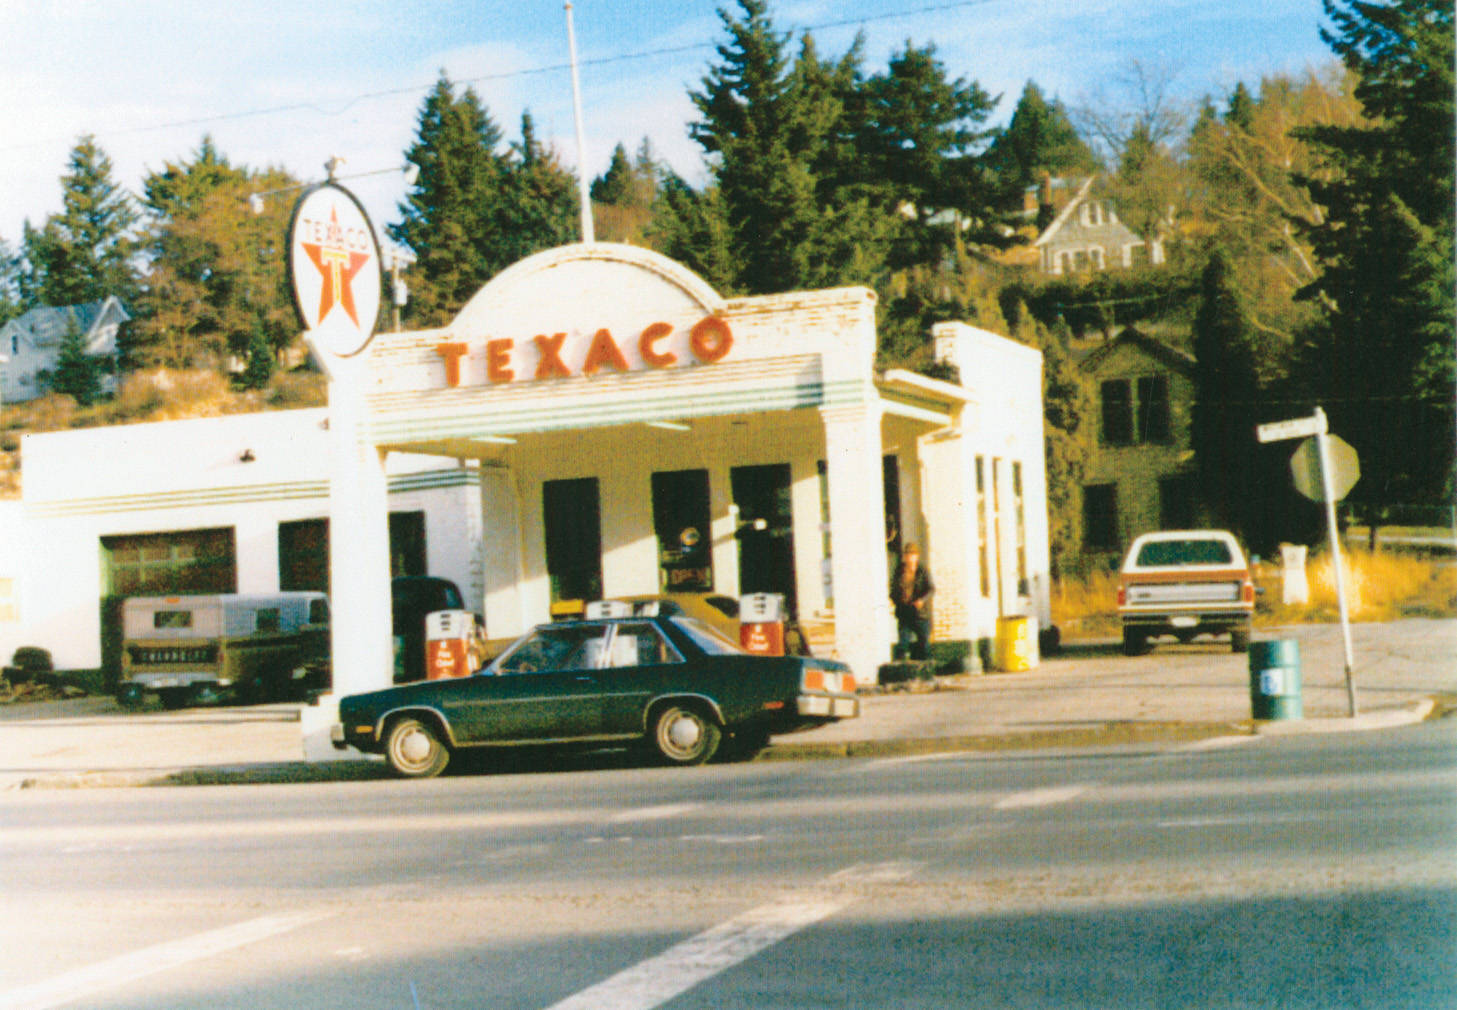 Texaco_station_Rosalia_Washington_1979